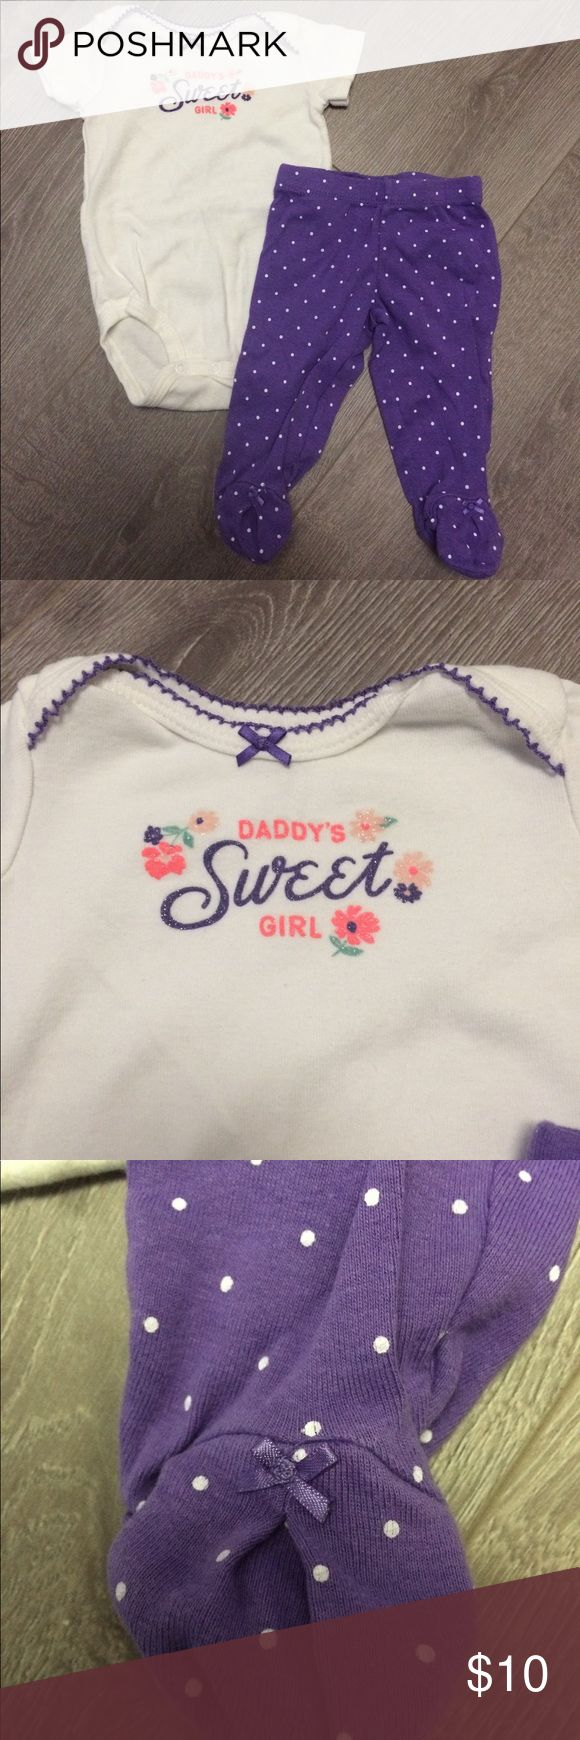 Carters Daddys sweet girl outfit 3 months Super cute outfit for a 3 month old baby girl. Onesie says daddy's girl. Pants have footies attached. Excellent used condition. The brand is Carters, size 3 Months Carter's Matching Sets